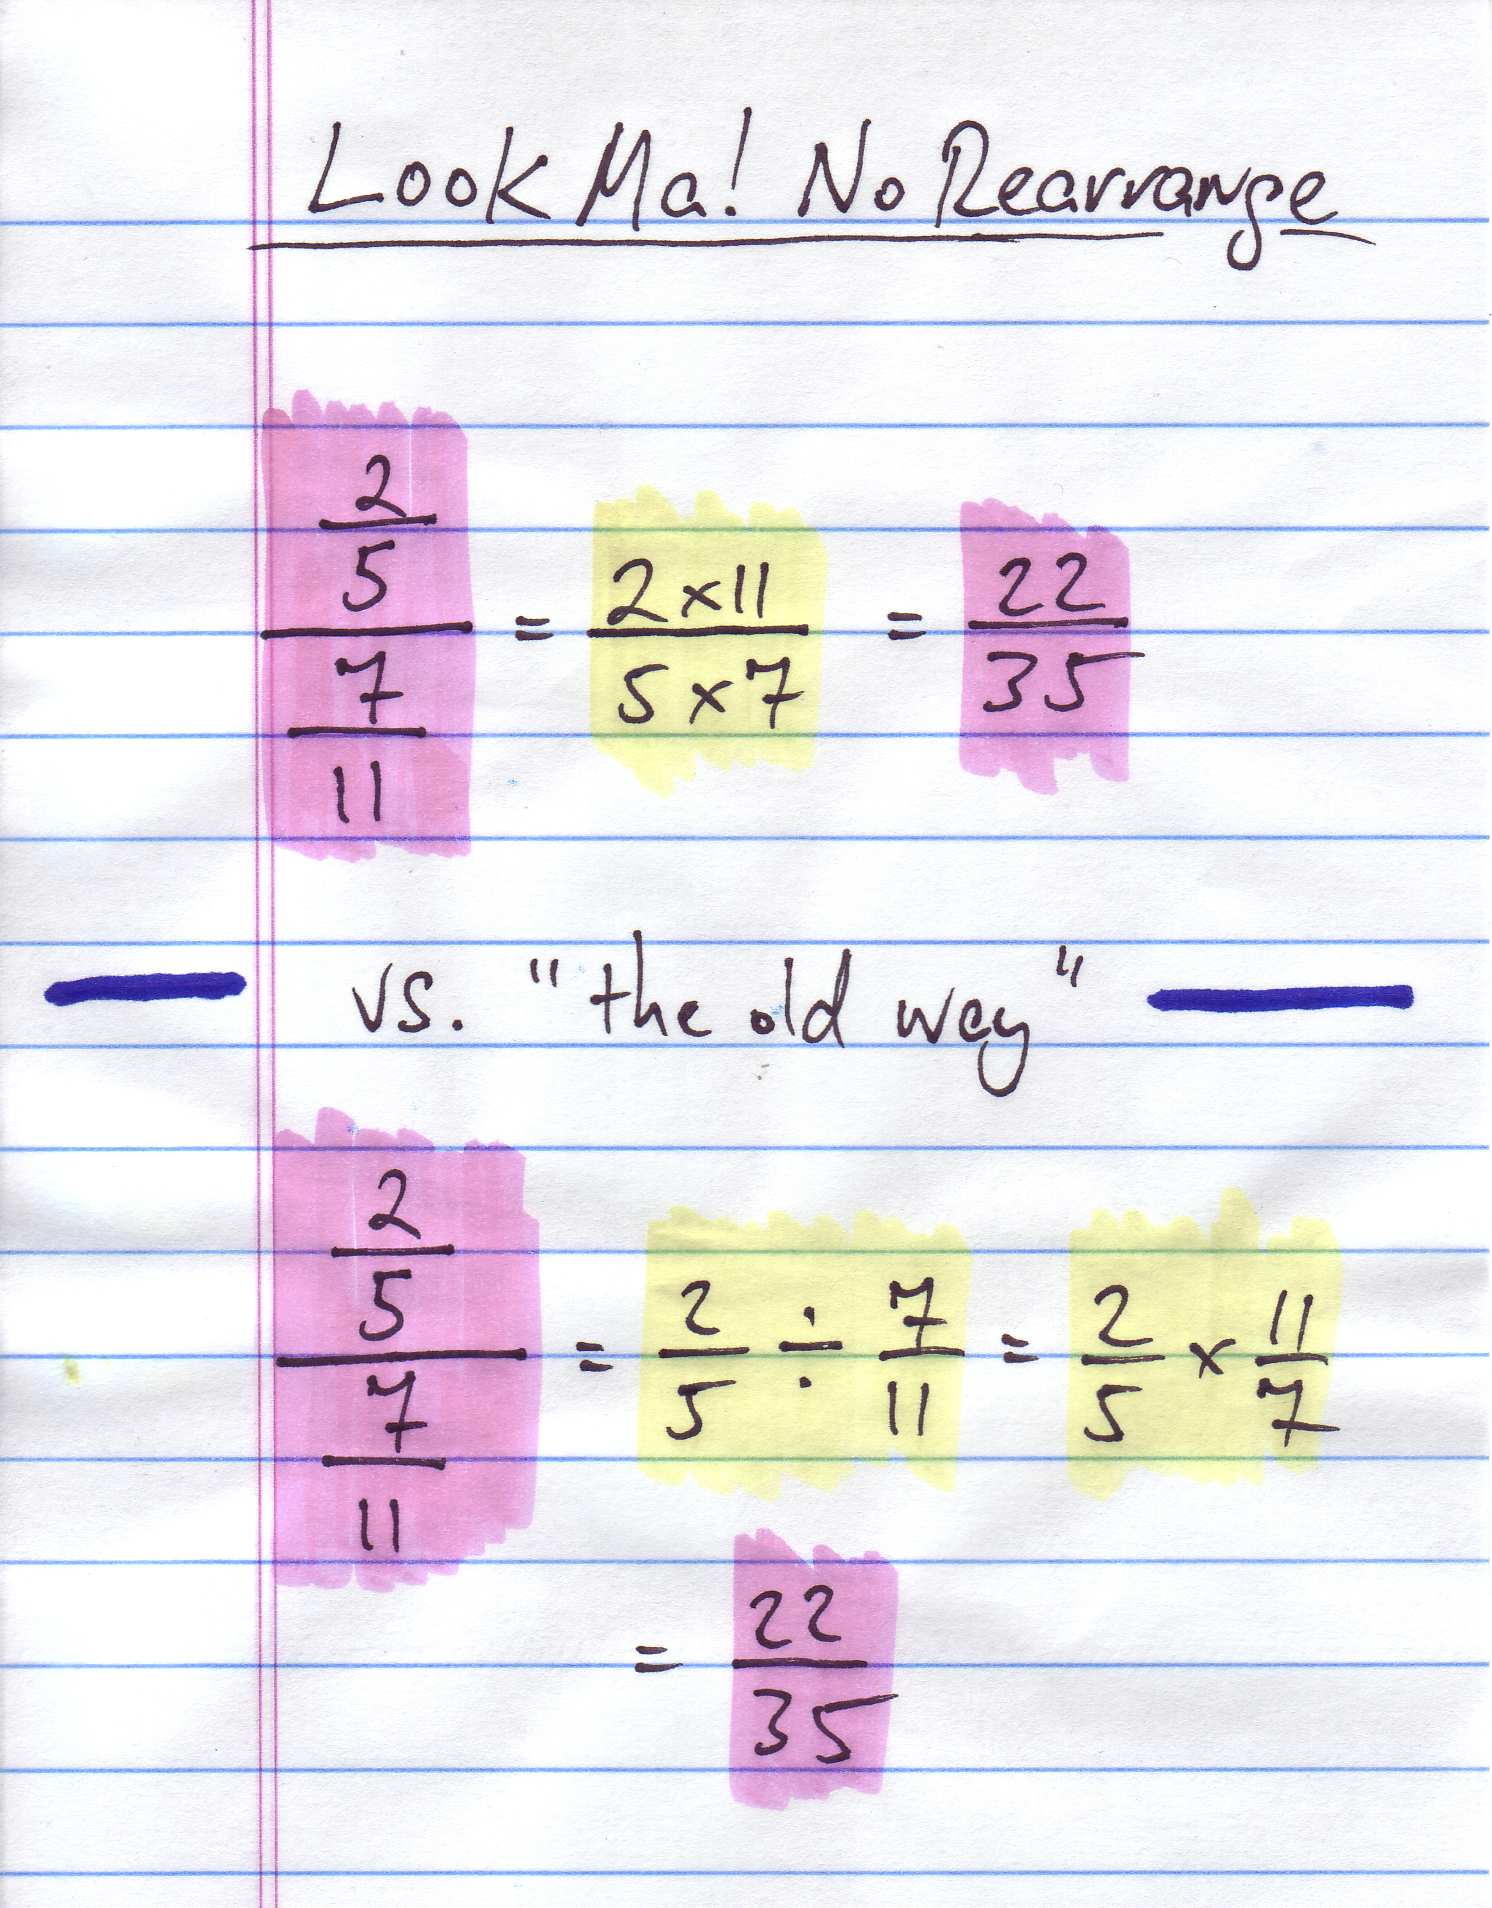 dividing fractions: from annoying to fun! | learning with a playful